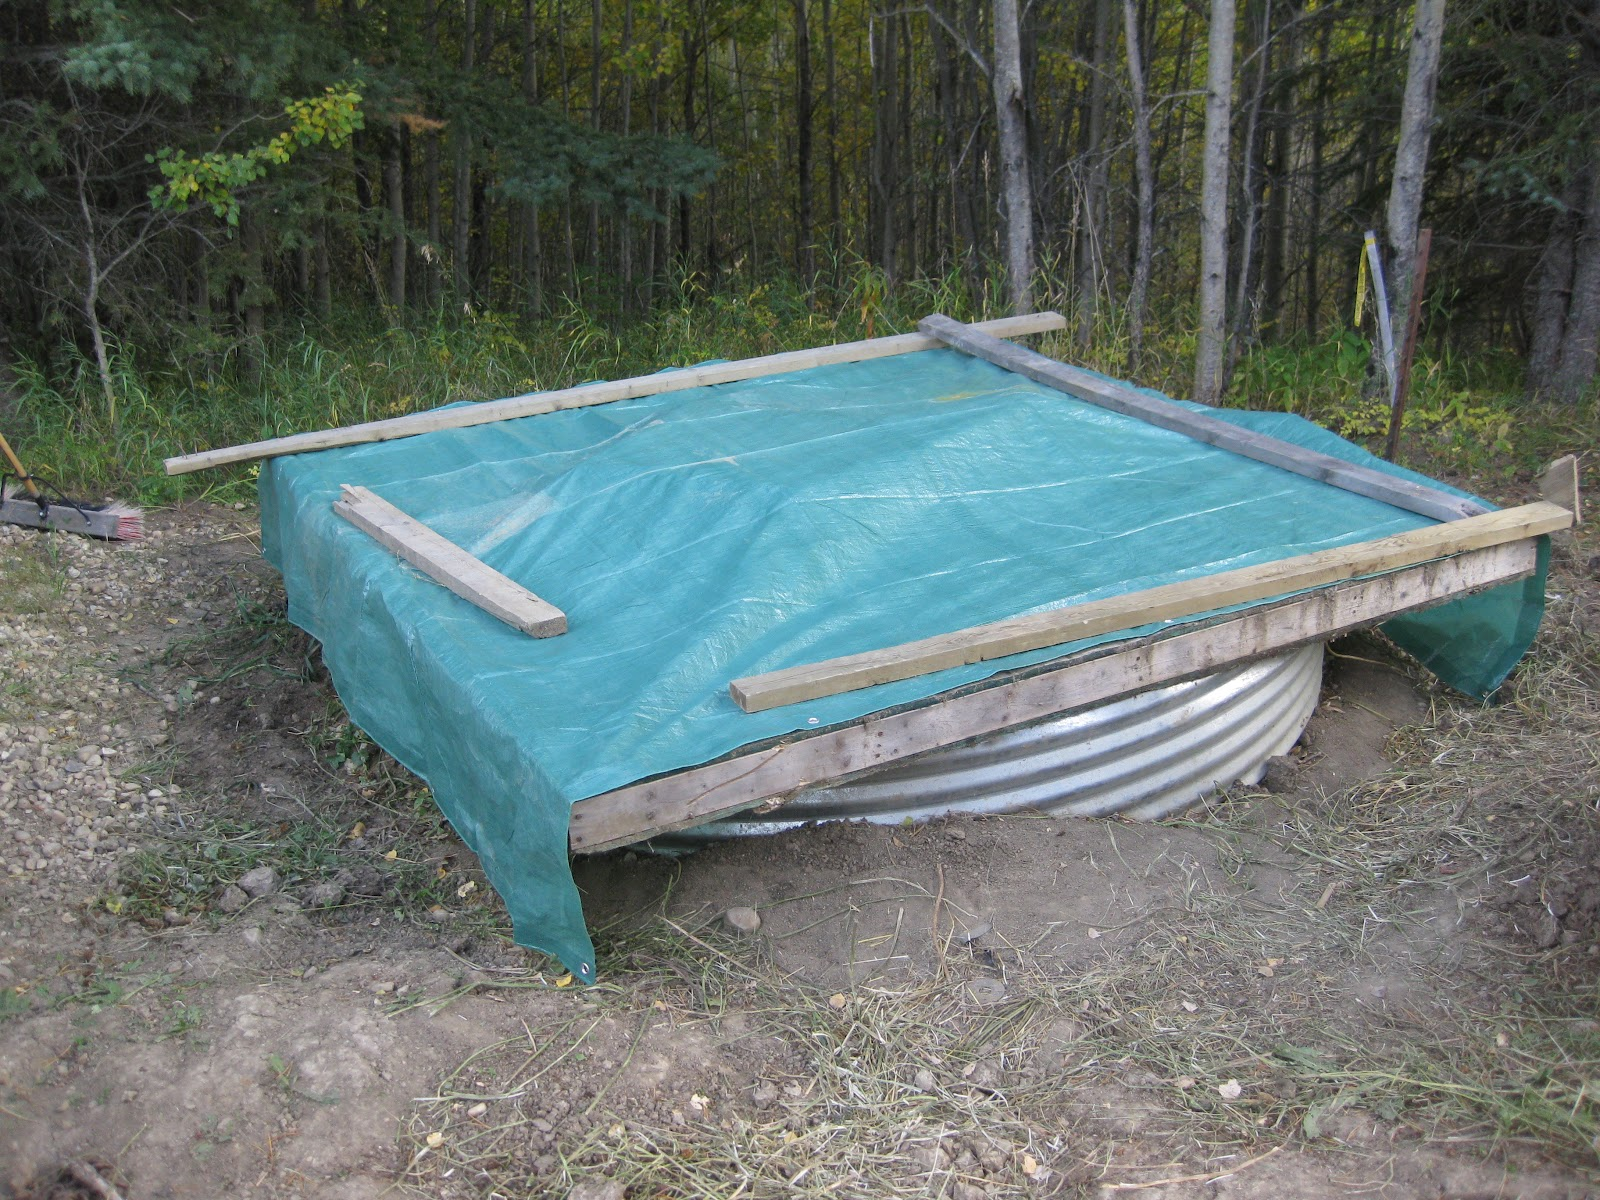 Simple man, simple plan.: Finally Done With the Underground Water Tank